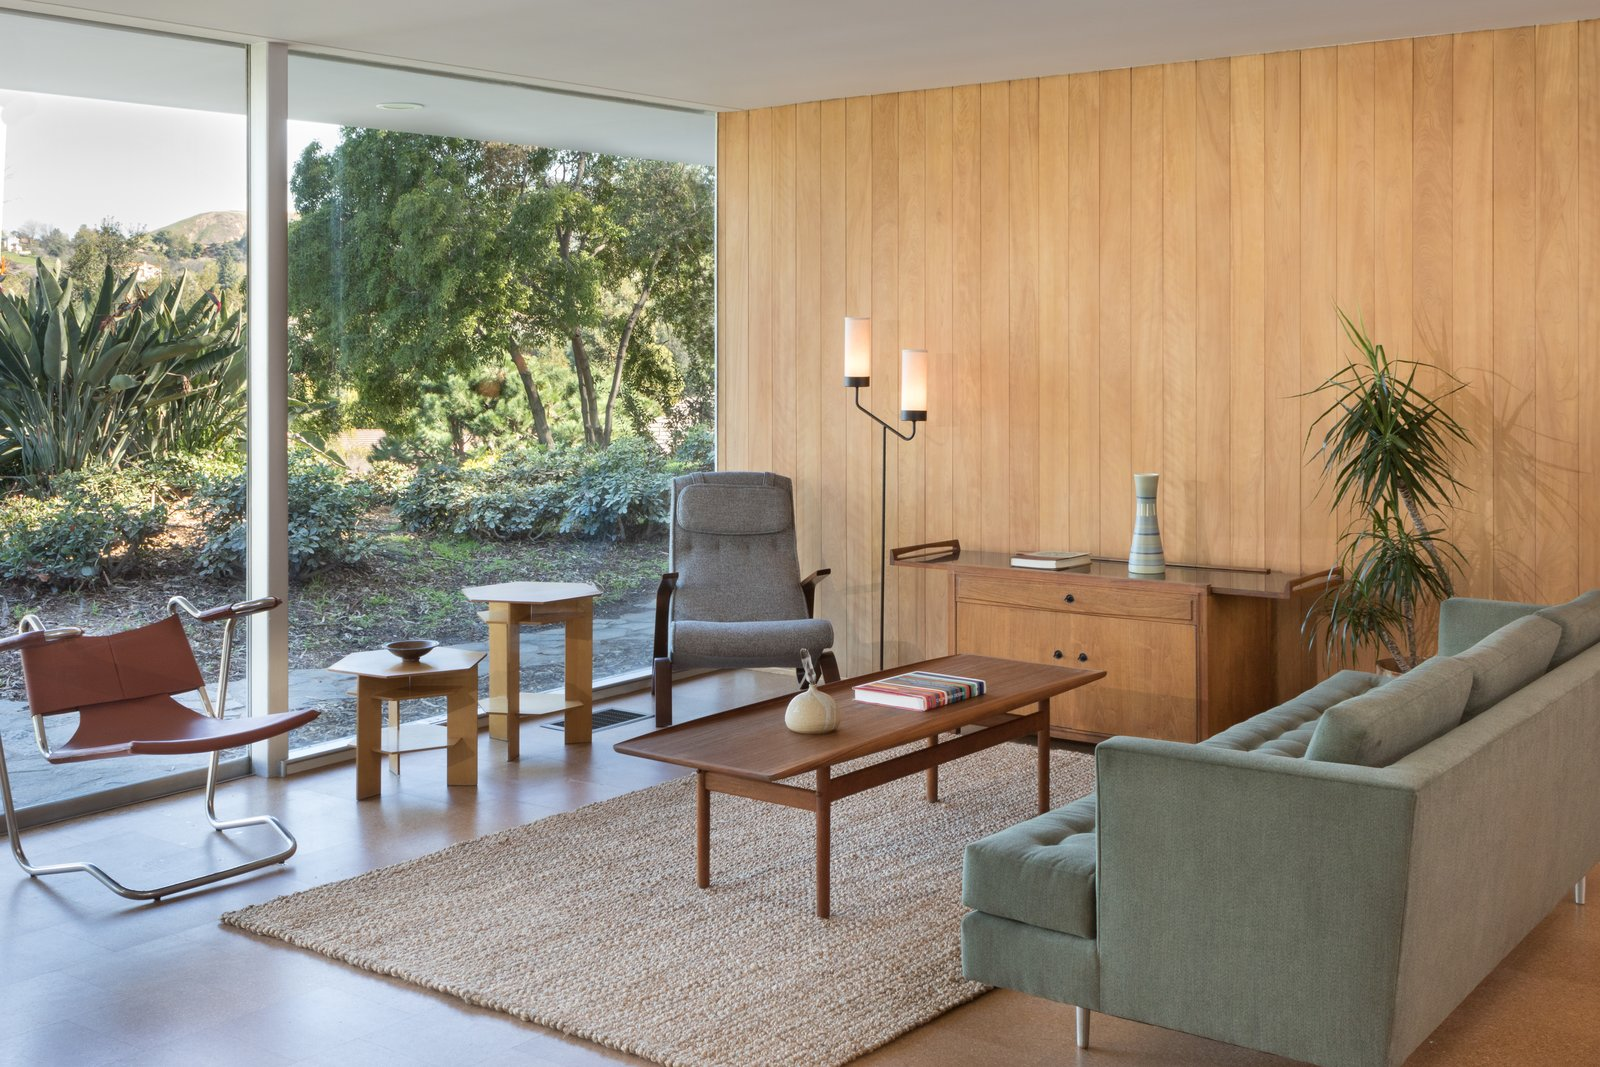 In the mid-fifties, modern residential architecture was suspect in the Eastern San Gabriel Valley. The Roberts family requested a ranch house, but Neutra steered his clients towards his vision. Mrs. Roberts wanted a low plaster ceiling throughout the home, which Neutra refused, choosing tongue-and-groove Douglas fir boards instead. He compromised with a plaster ceiling in the living room, pictured above. Tagged: Living Room, Sofa, and Medium Hardwood Floor. Nearly Slated For Destruction, a Restored Neutra in West Covina Asks $1.8M - Photo 3 of 9